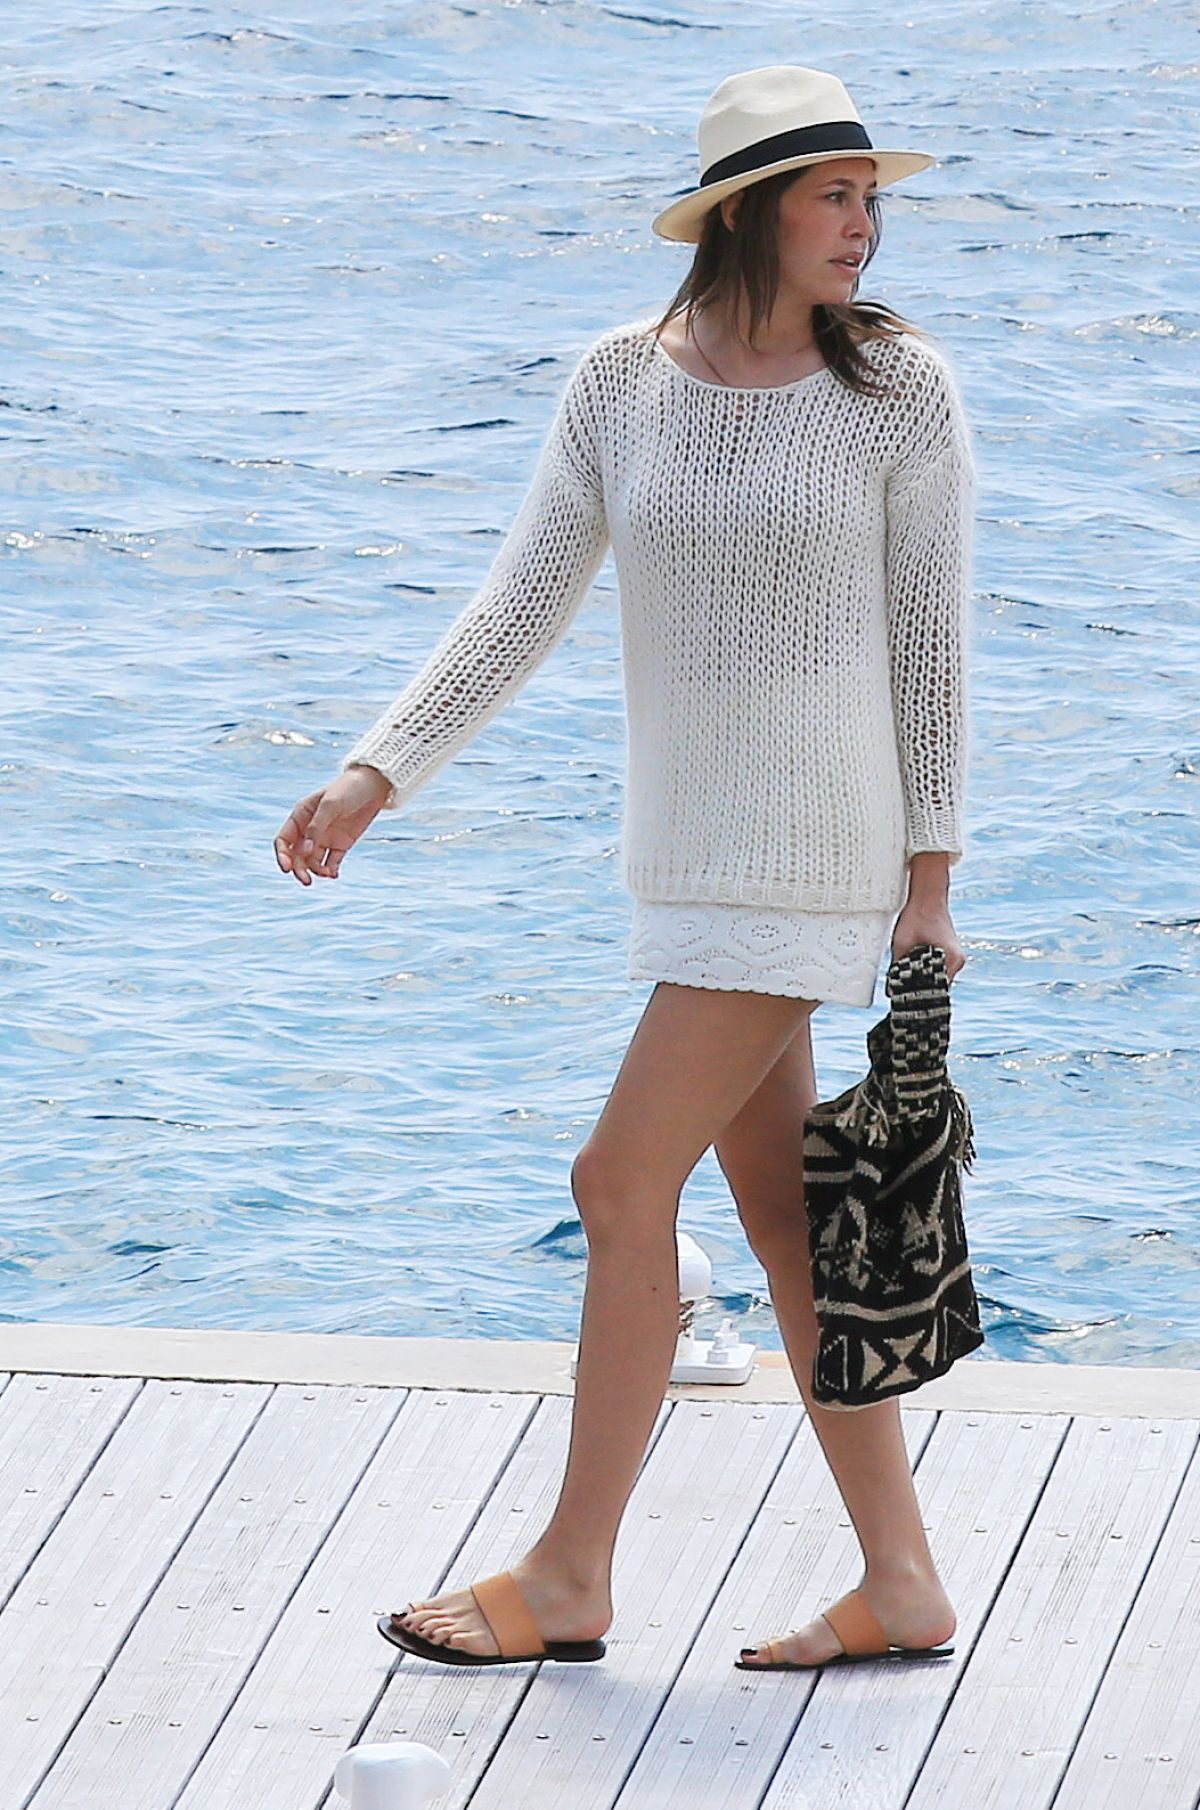 DASHA ZHUKOVA at Eden Roc in Antibes 05/17/2016